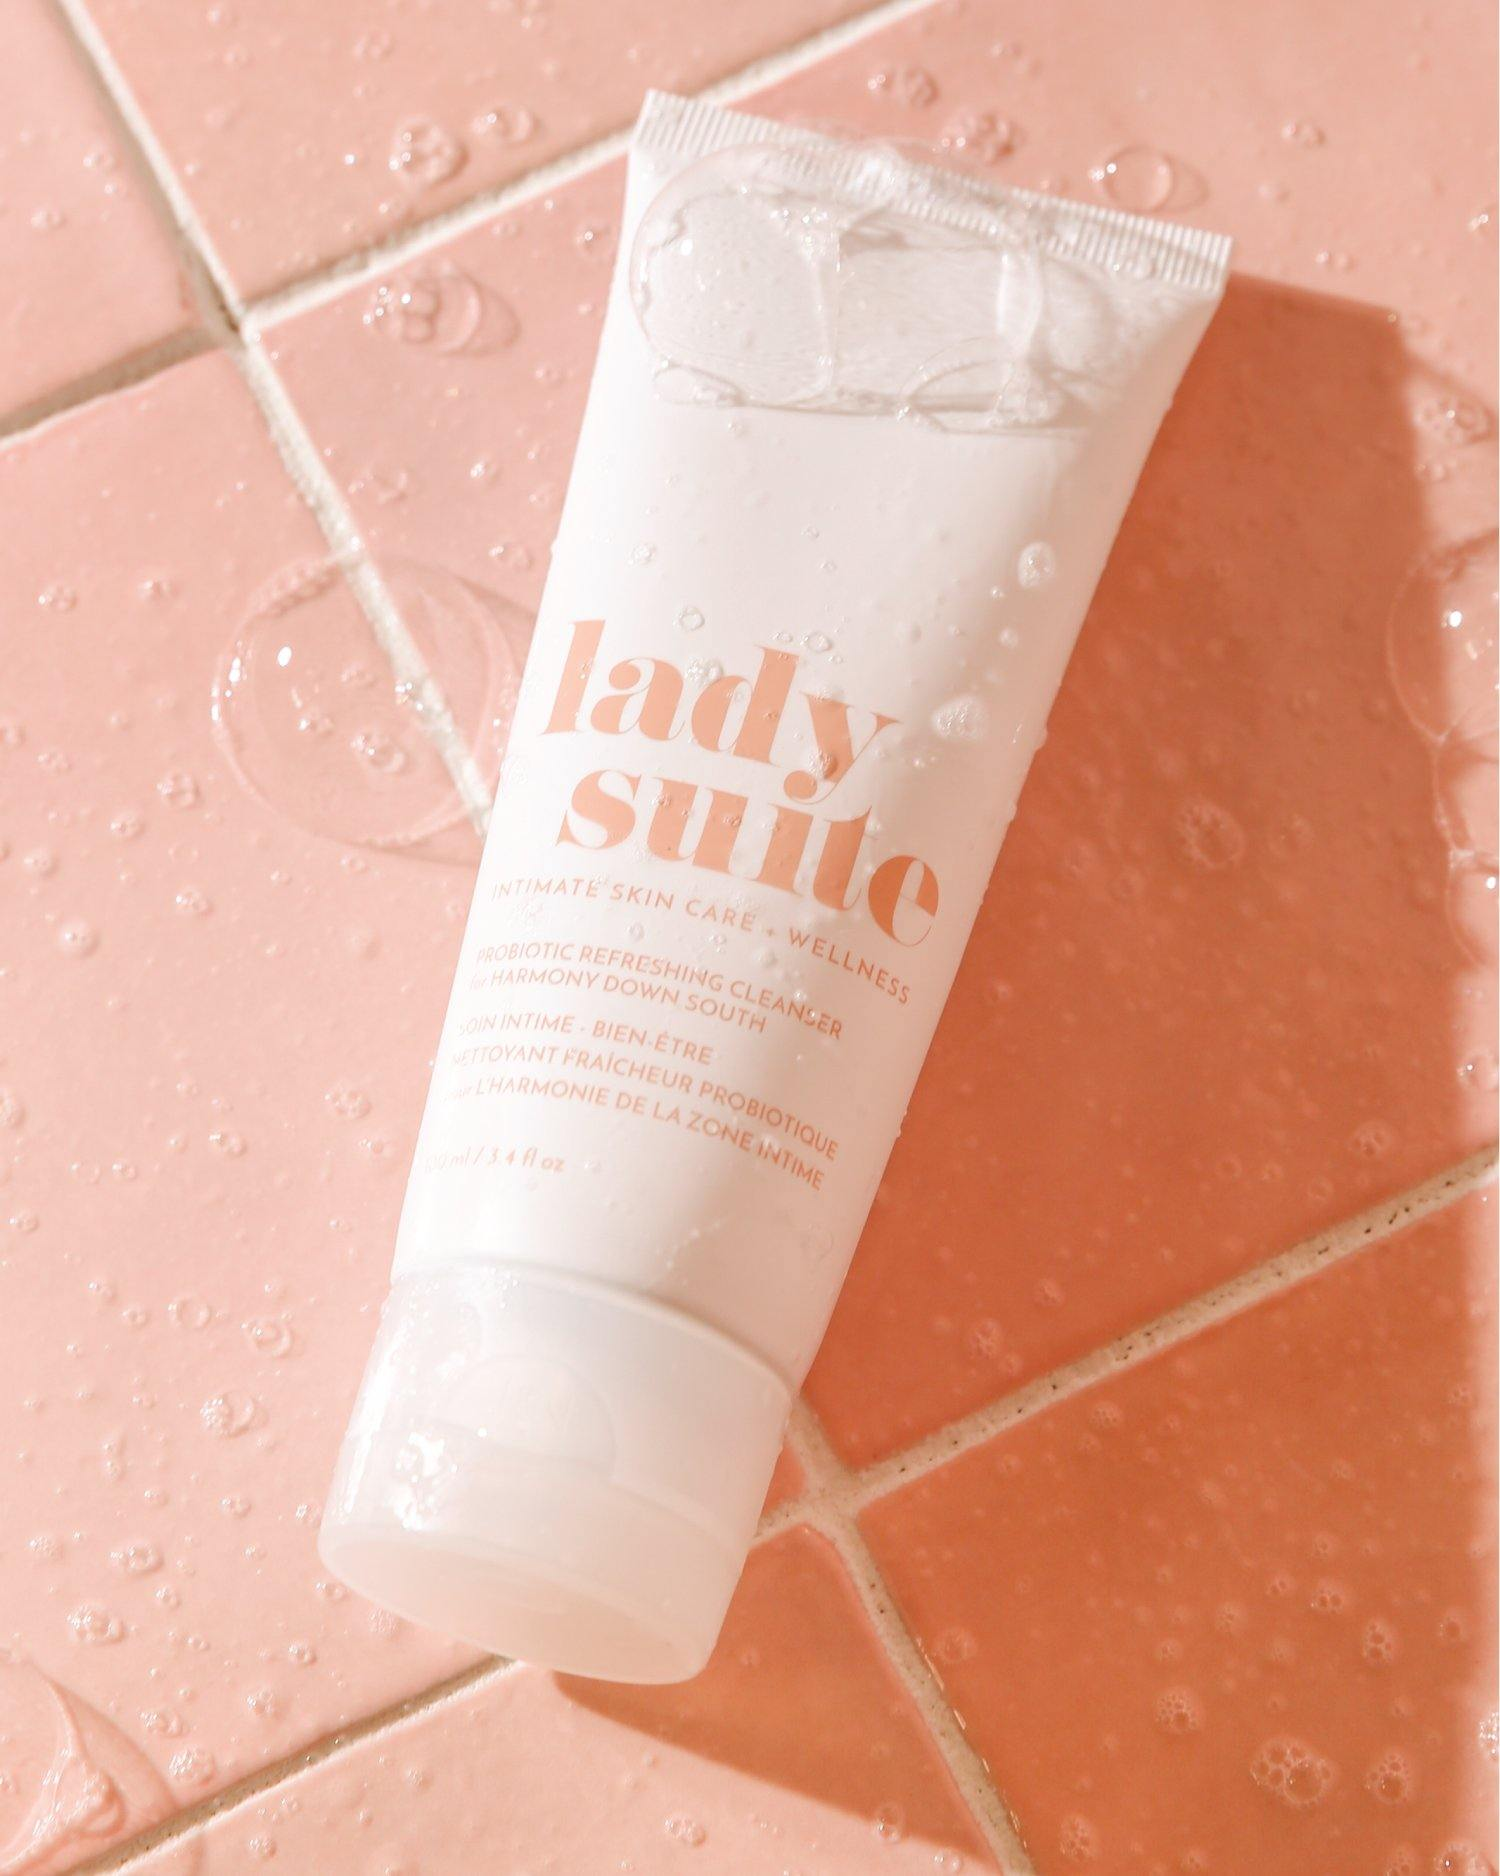 Lady Suite Probiotic Cleanser